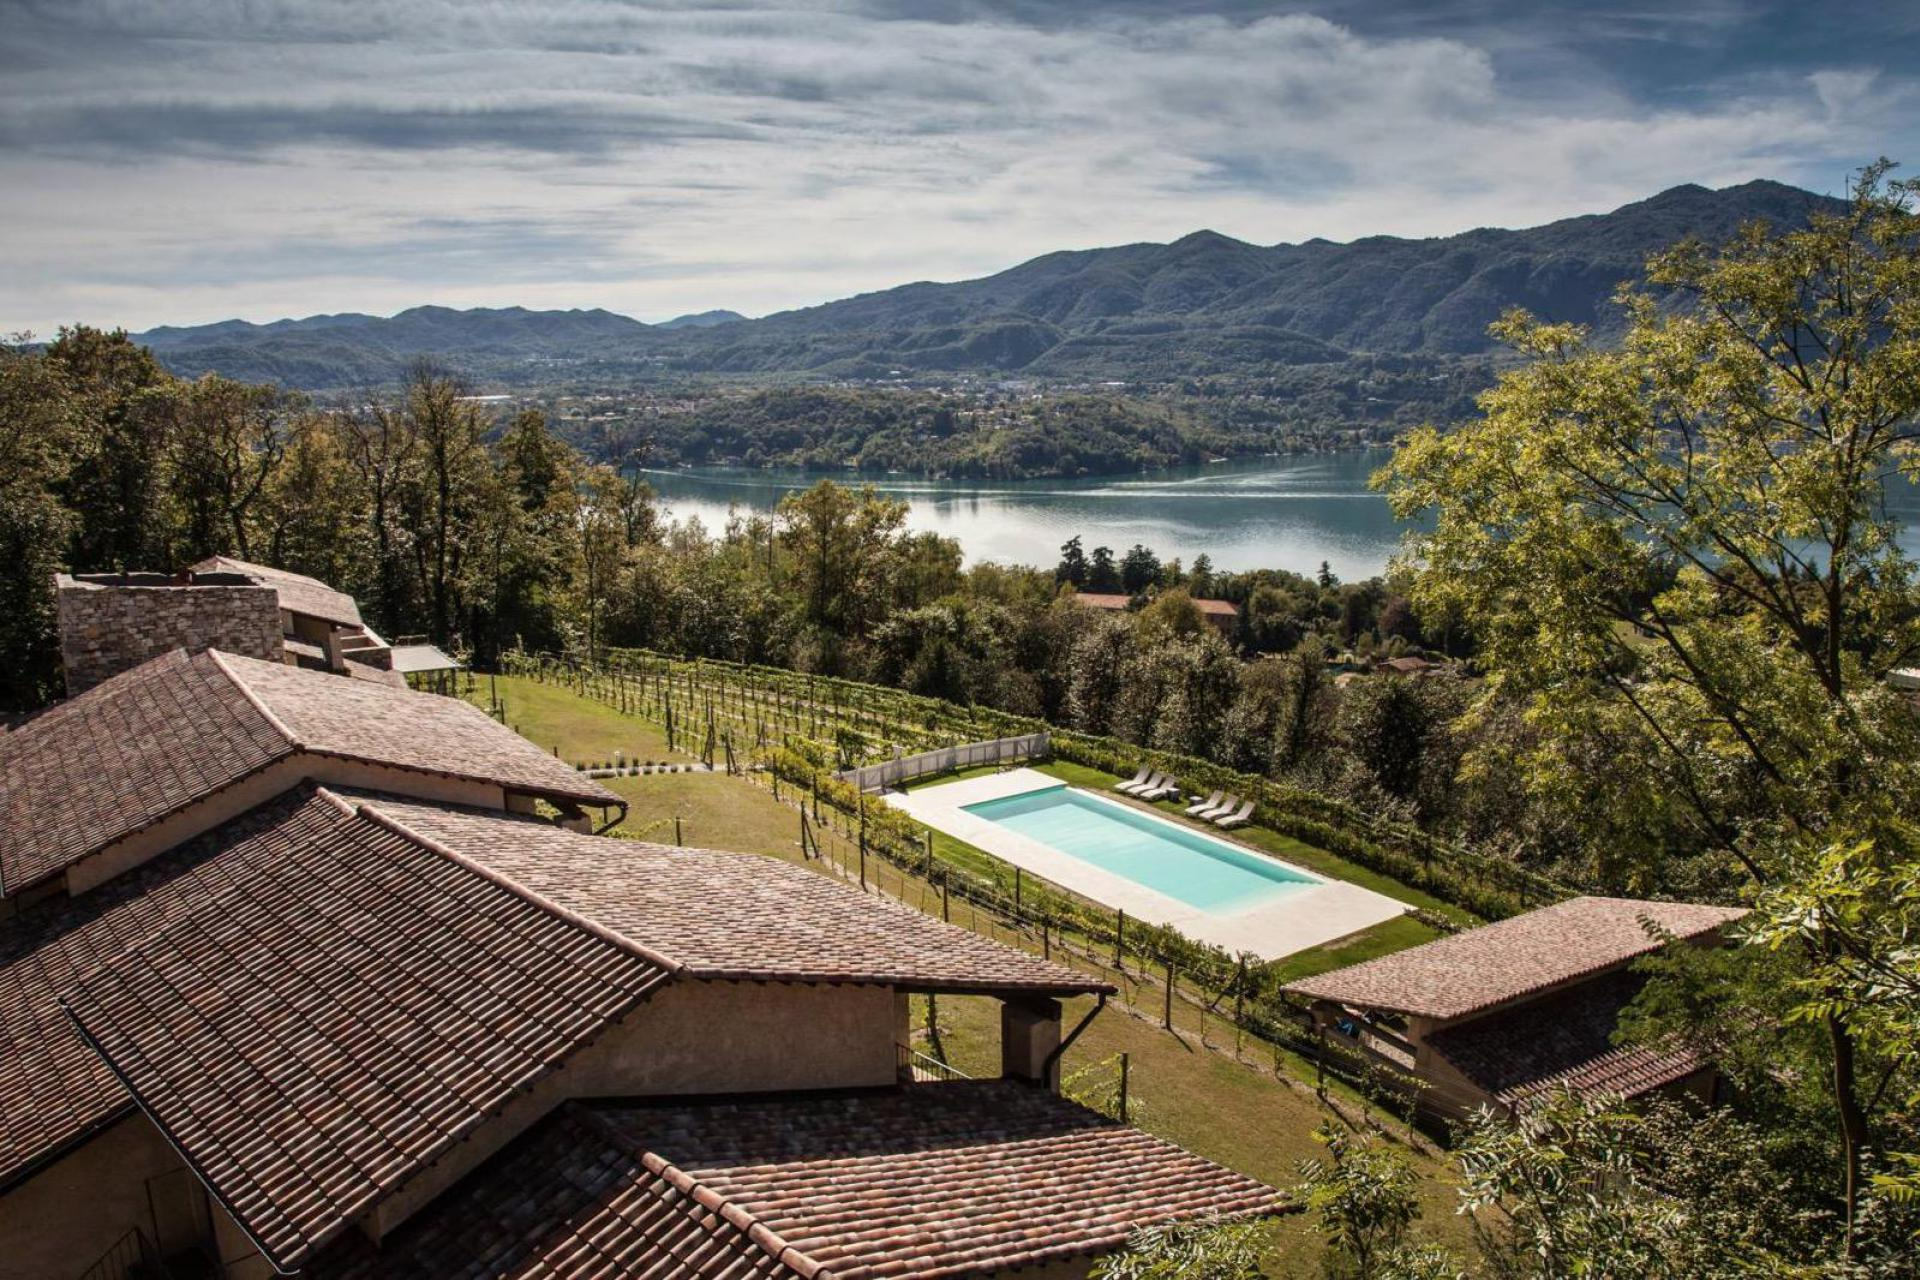 Agriturismo Lake Como and Lake Garda Agriturismo Lake Maggiore with outstanding views